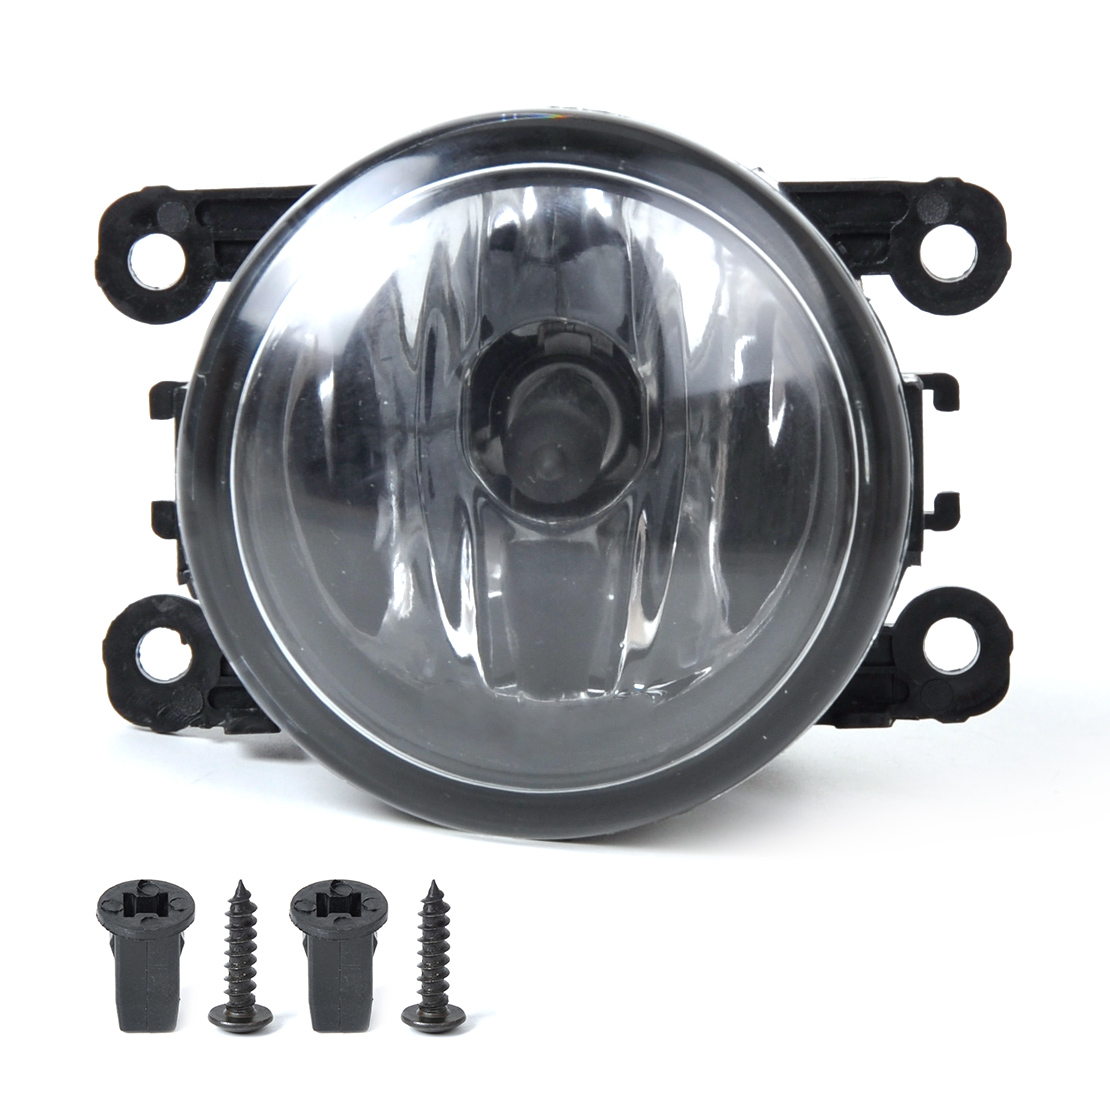 DWCX 4F9Z-15200-AA 1pc Right / Left Fog Light Lamp + H11 Bulbs 55W For Acura Honda Ford Lincoln Jaguar Subaru Nissan Suzuki beler fog light lamp h11 female adapter wiring harness sockets wire connector for ford focus fiesta acura nissan honda subaru